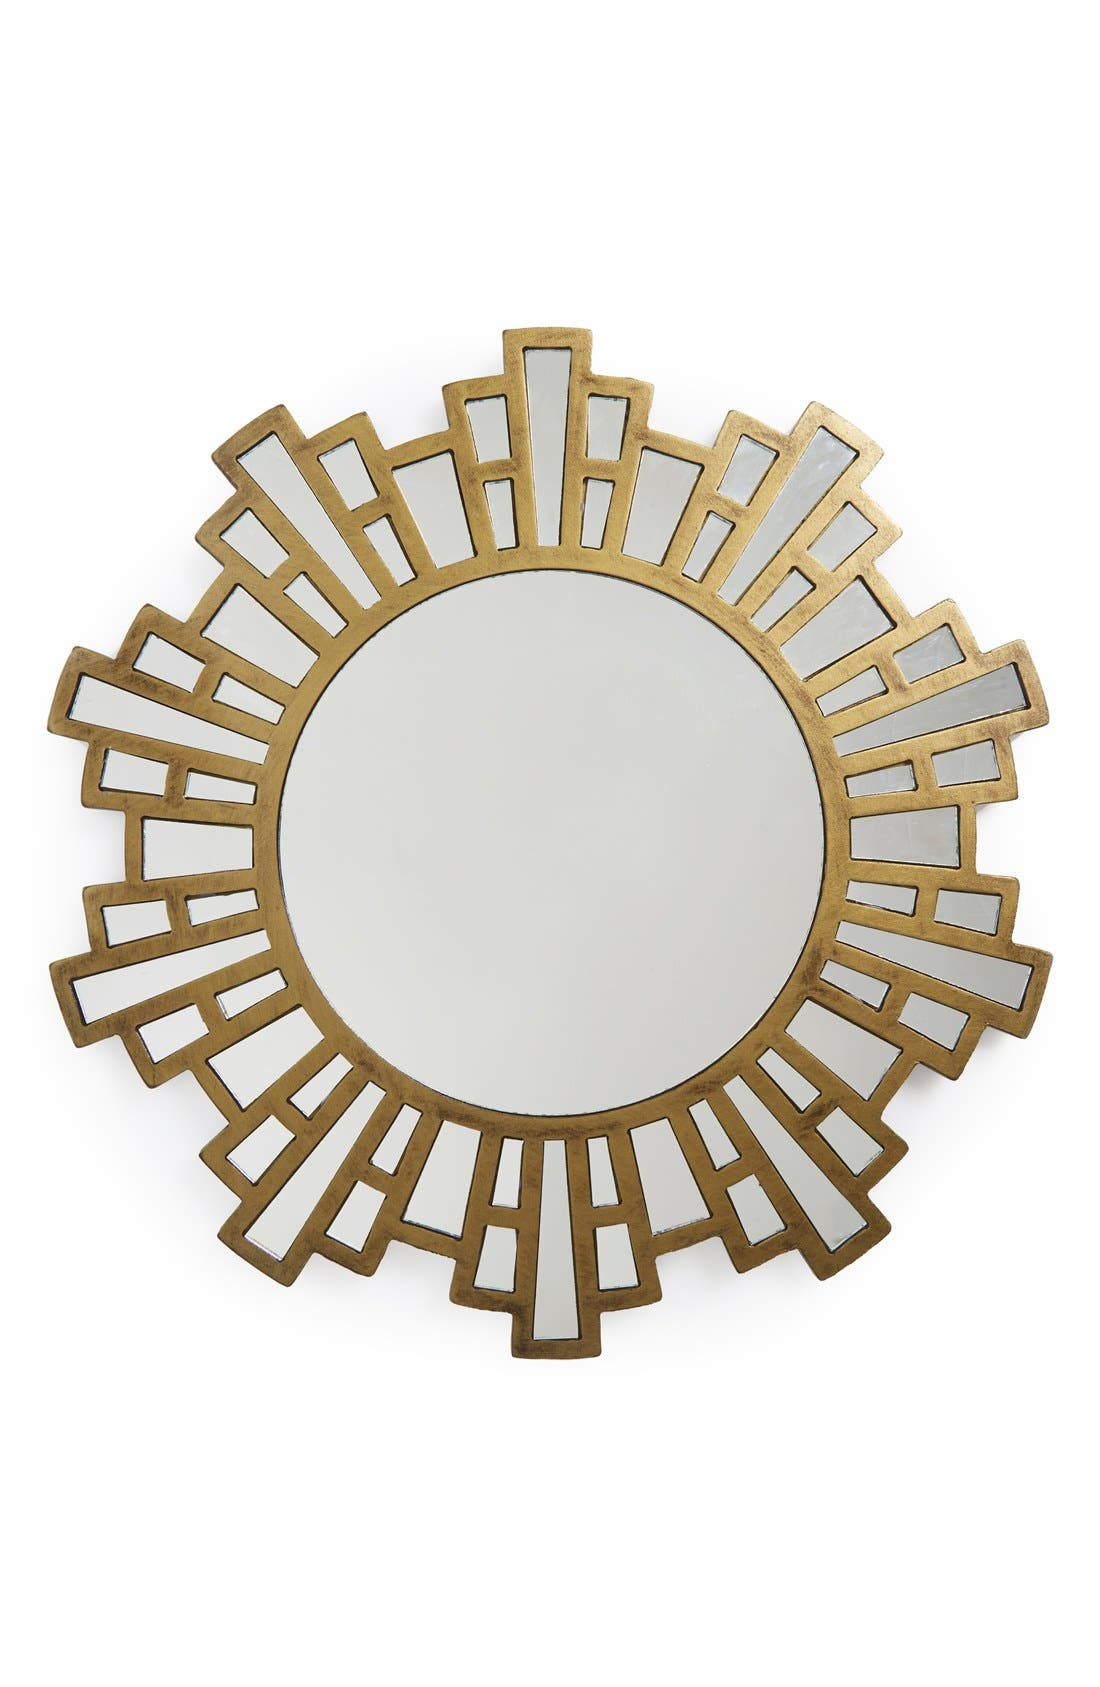 Alternate Image 1 Selected - Era Home 'Gold Starburst' Mirror